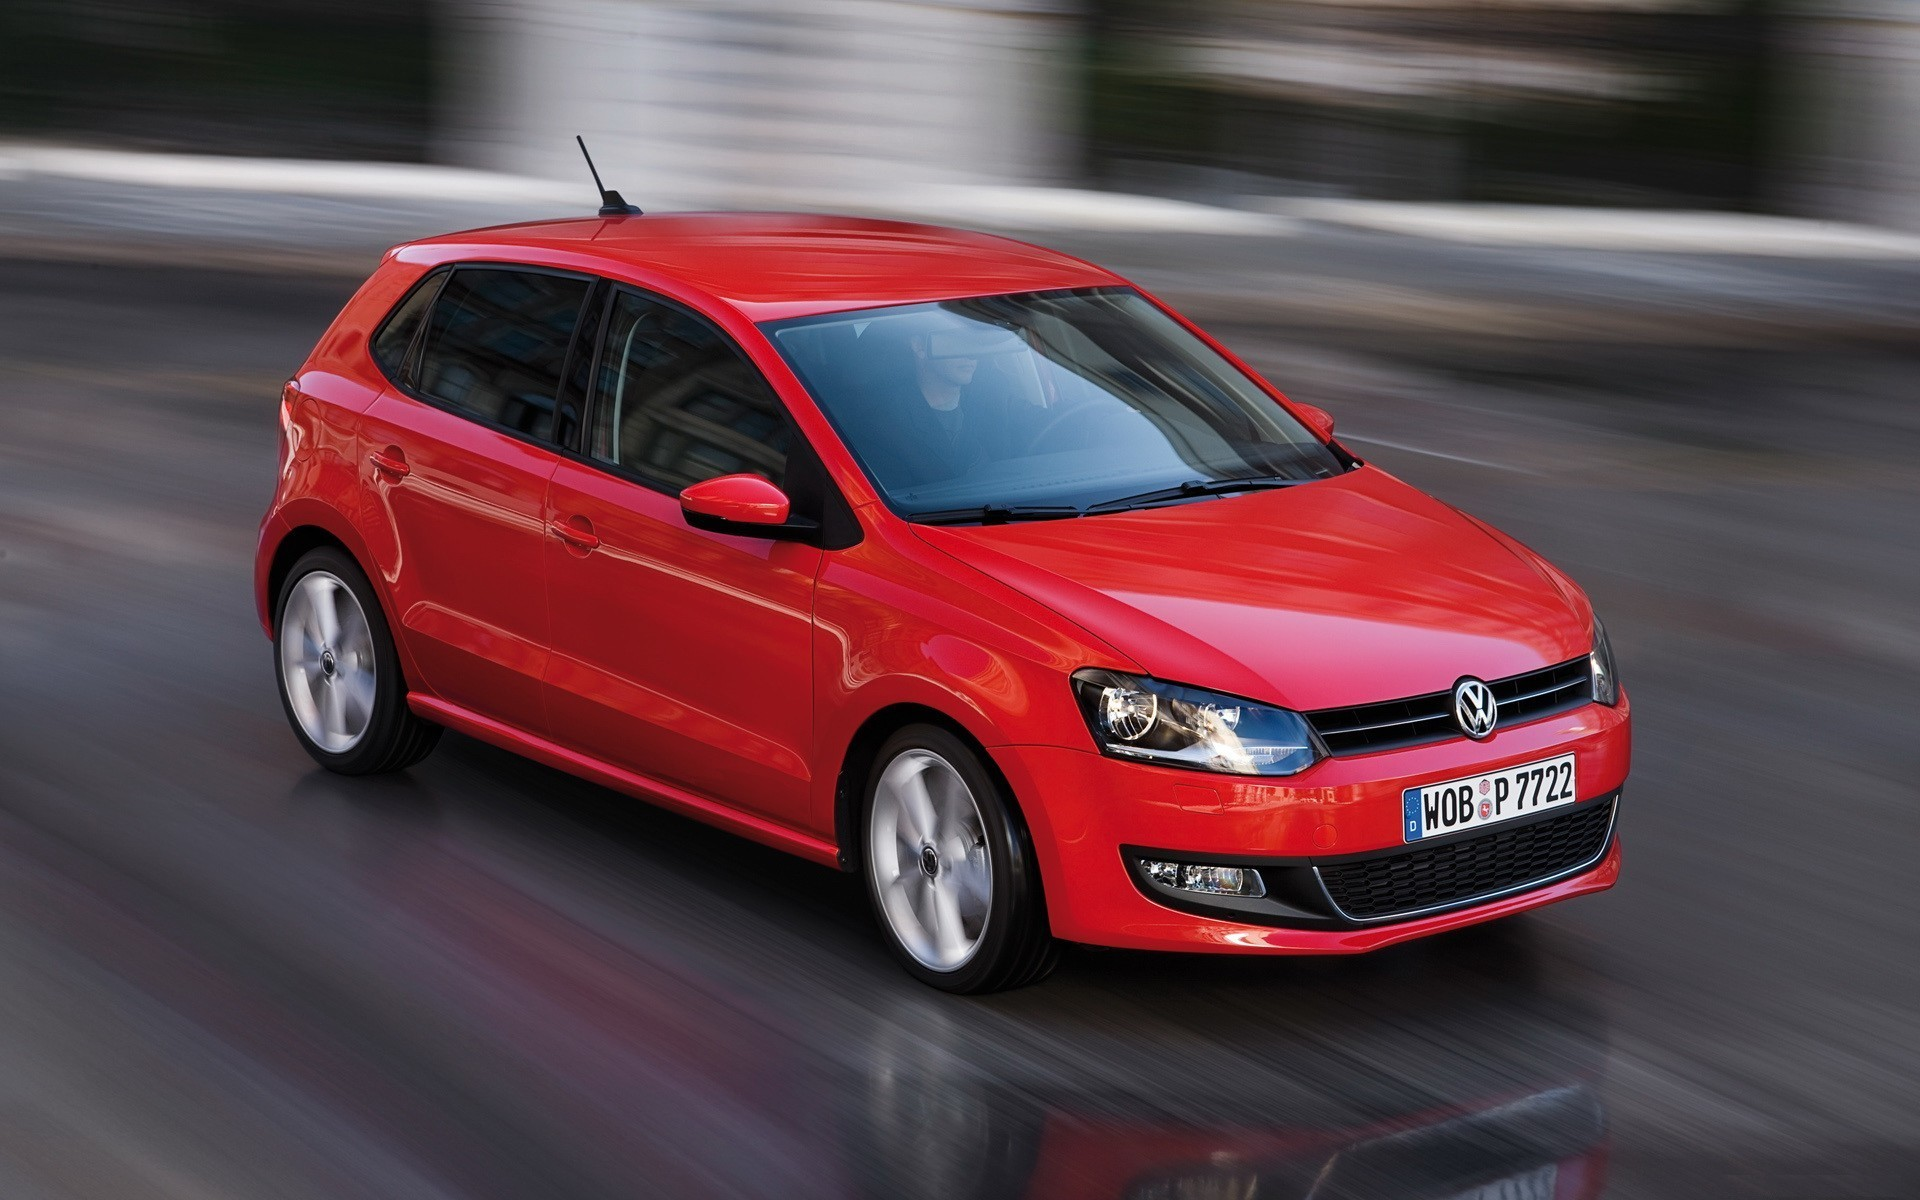 Beautiful Picture Of Volkswagen Polo Picture Of Car Red Imagebank Biz